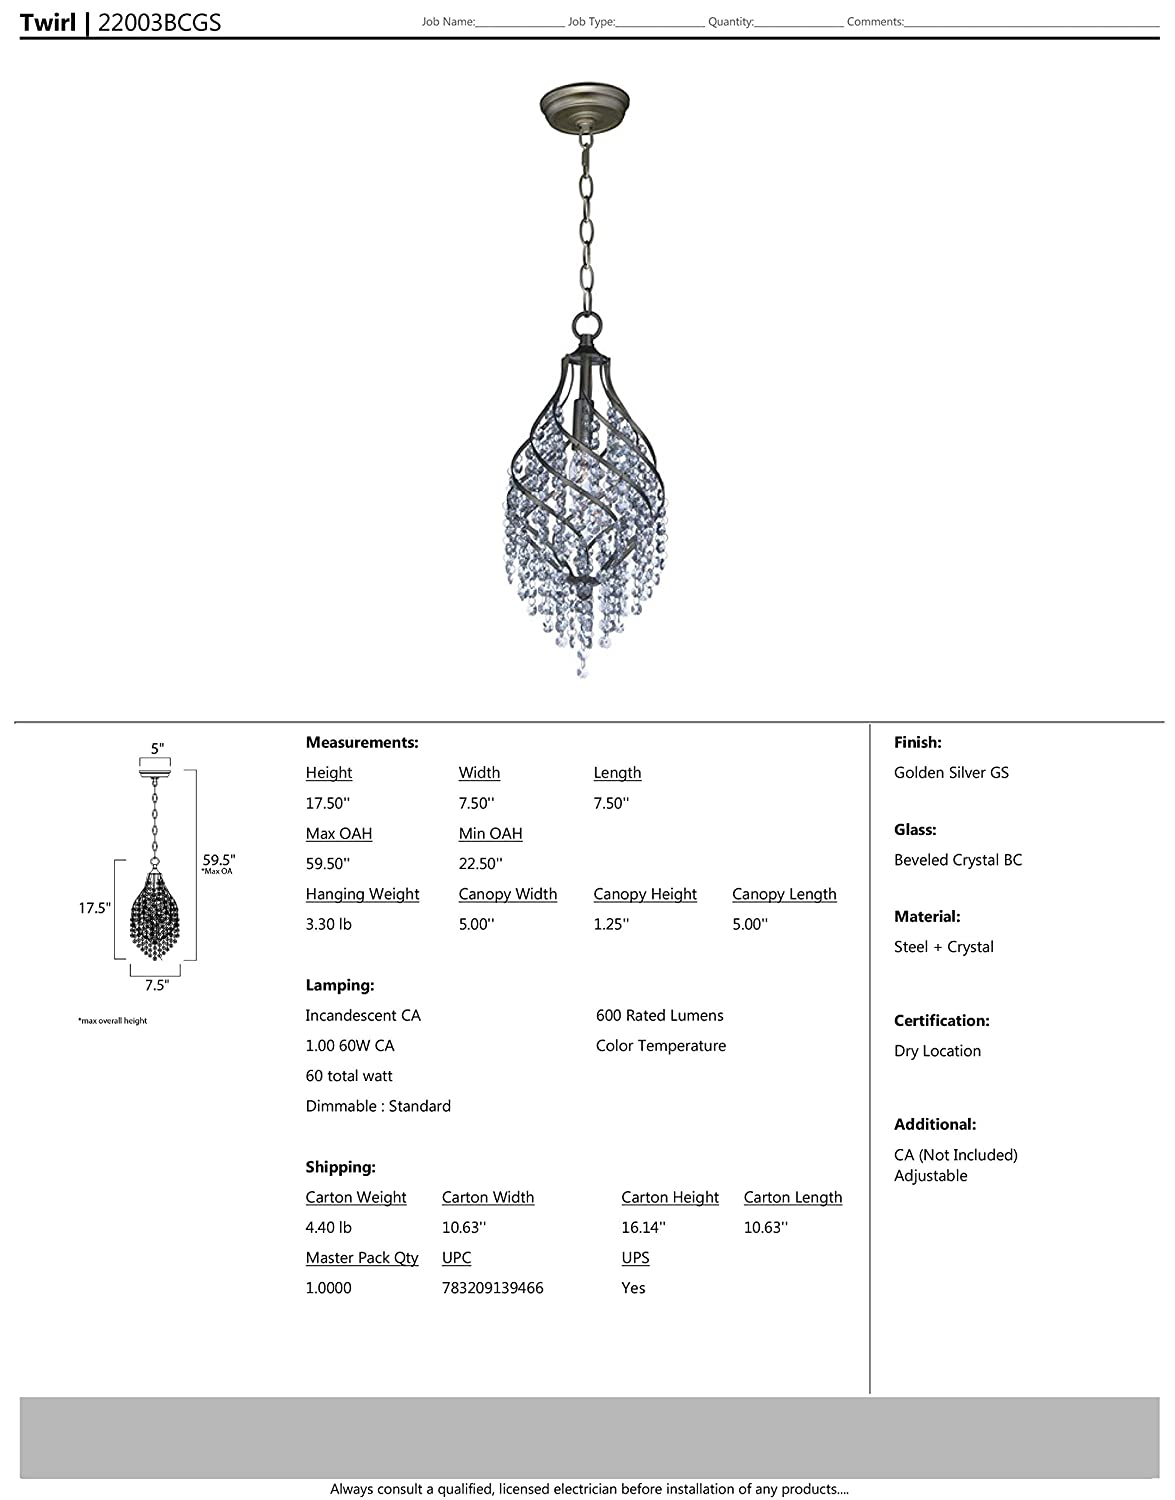 300 Rated Lumens Maxim 22003BCGS Twirl 1-Light Pendant Standard Triac//Lutron or Leviton Dimmable Dry Safety Rating Golden Silver Finish 3000K Color Temp Concrete Shade Material CA Incandescent Incandescent Bulb 5W Max. Beveled Crystal Glass